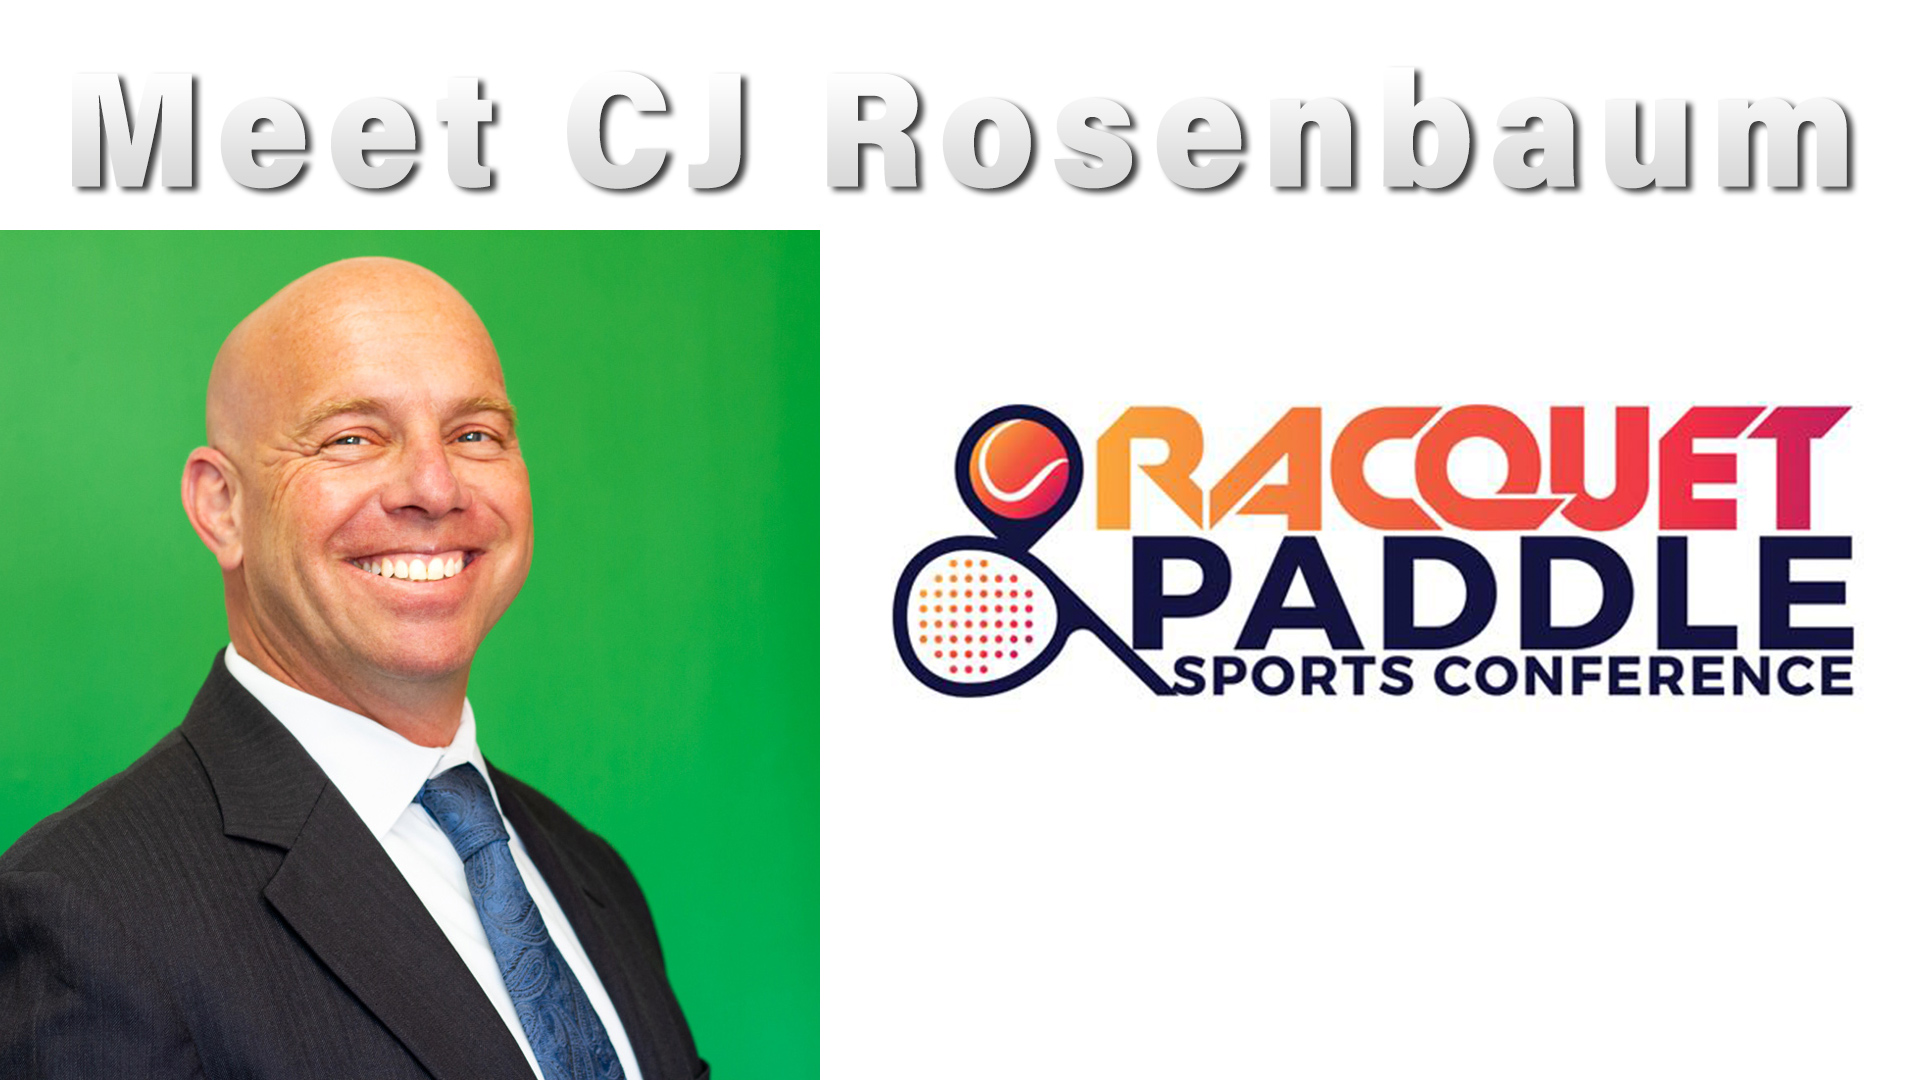 Racquet & Paddle Sports Conference - Orlando, FL